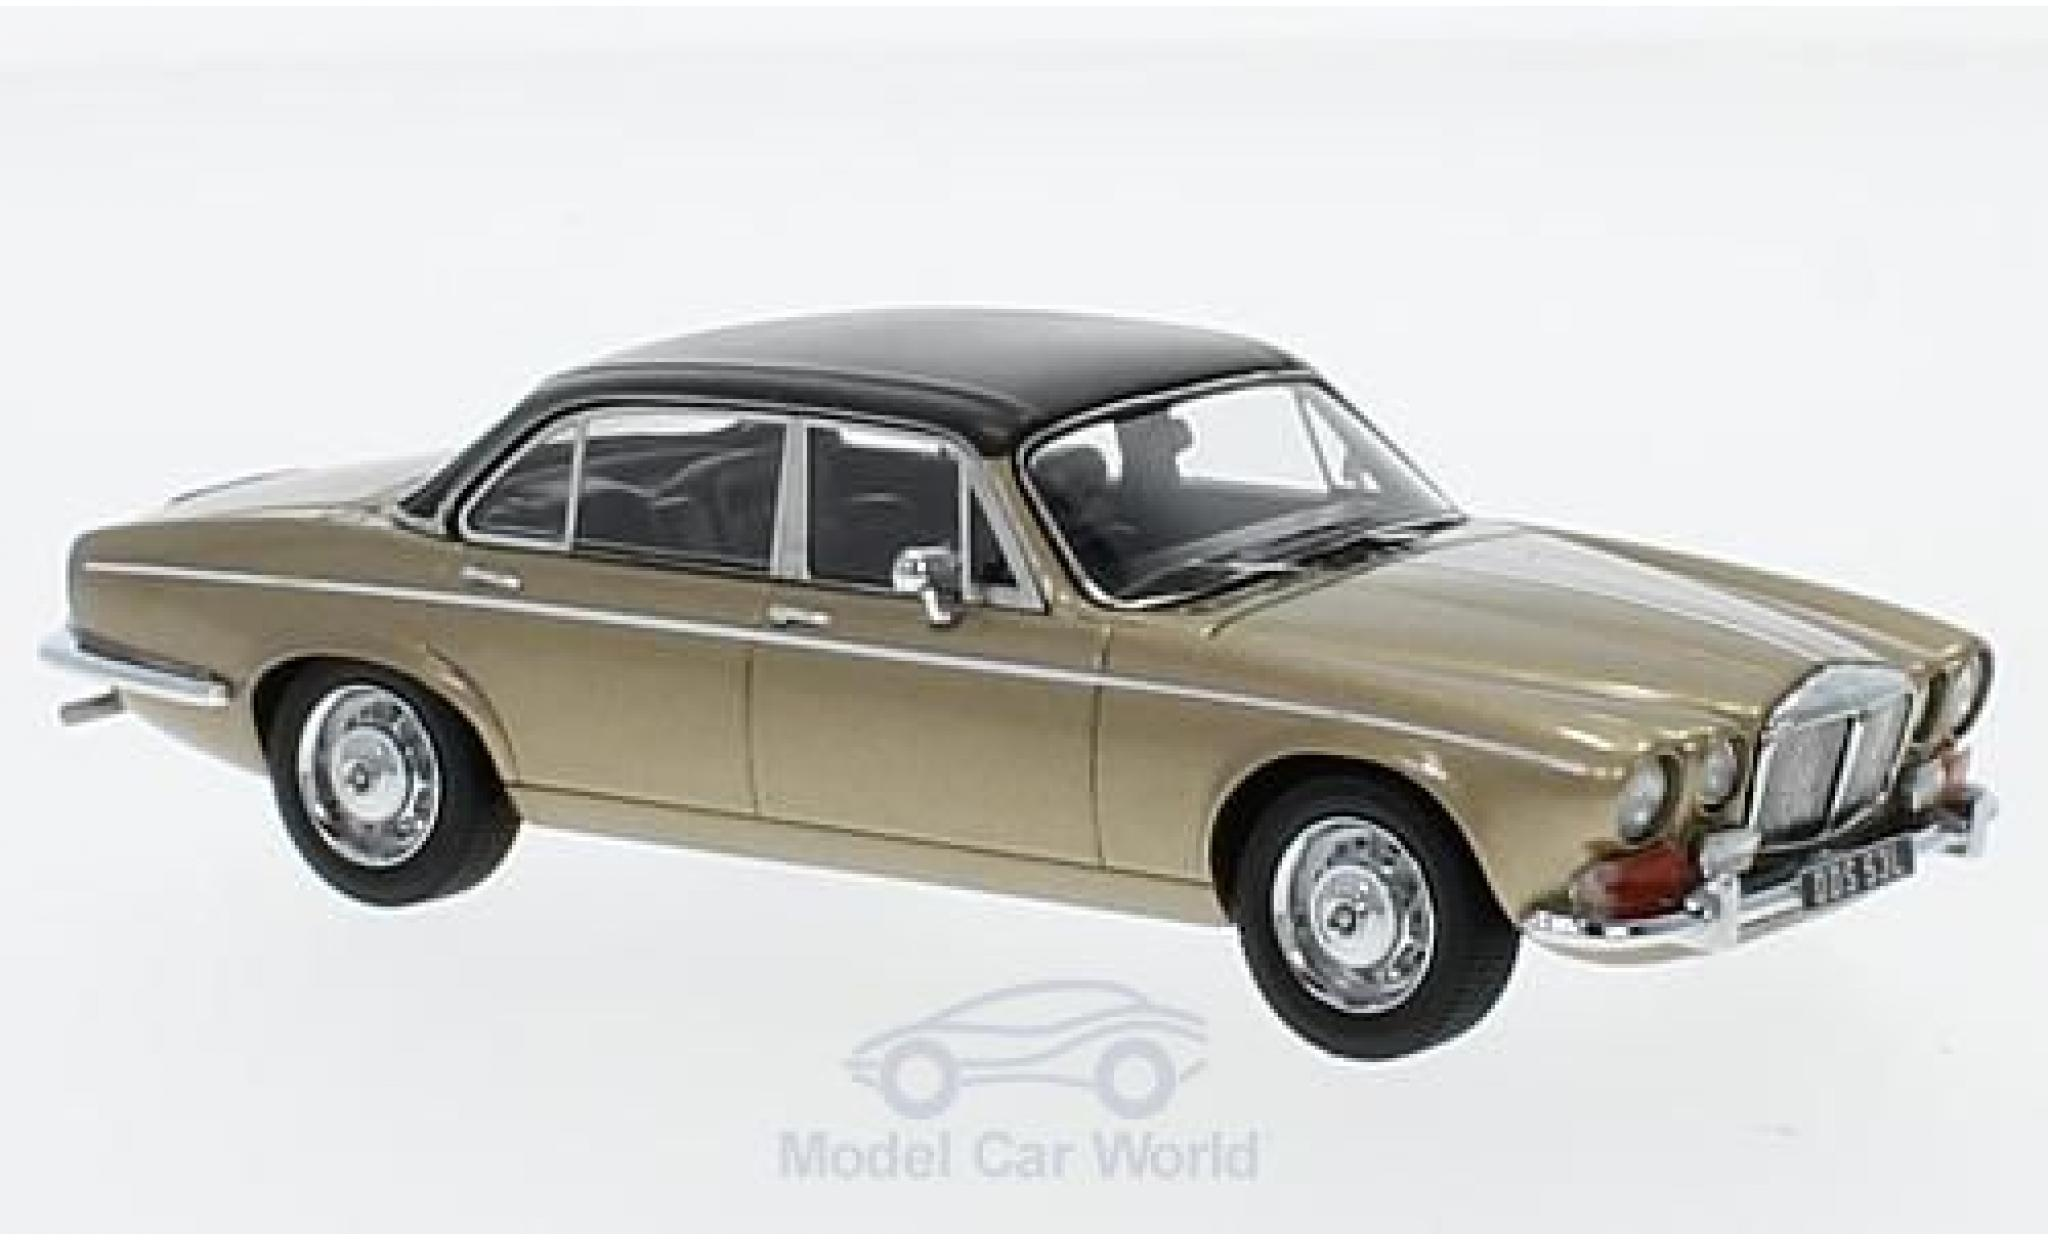 Daimler Double Six 1/43 Matrix Vanden Plas Series 1 metallise marron/noire RHD